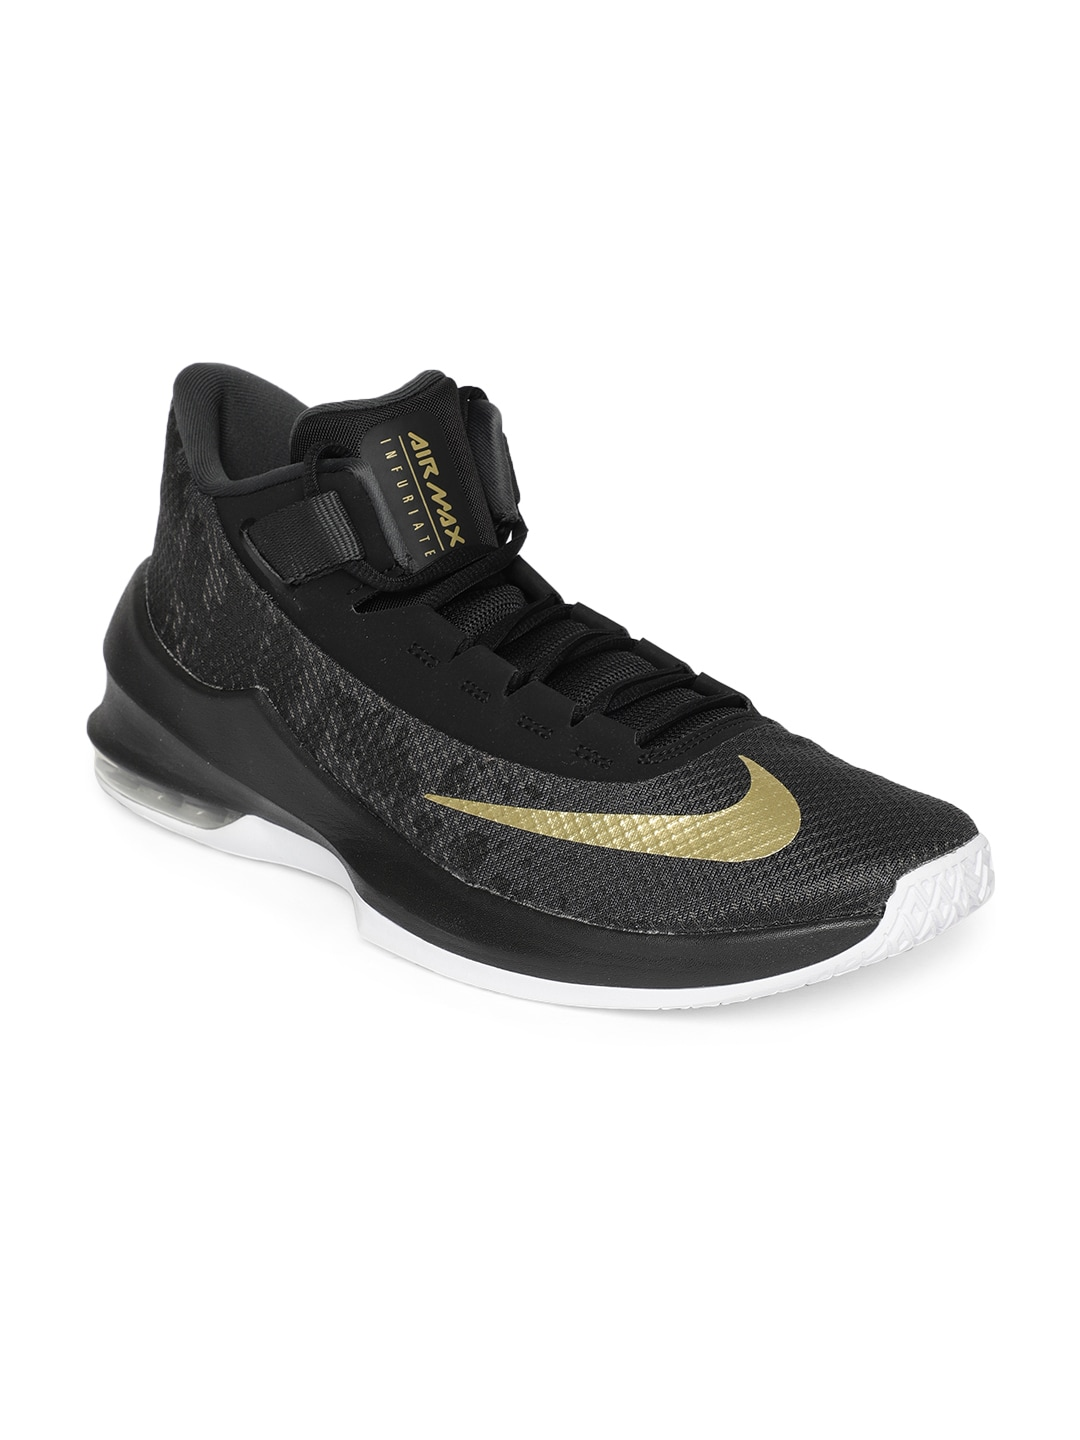 premium selection 9e863 9d054 Sports Shoes for Men - Buy Men Sports Shoes Online in India - Myntra